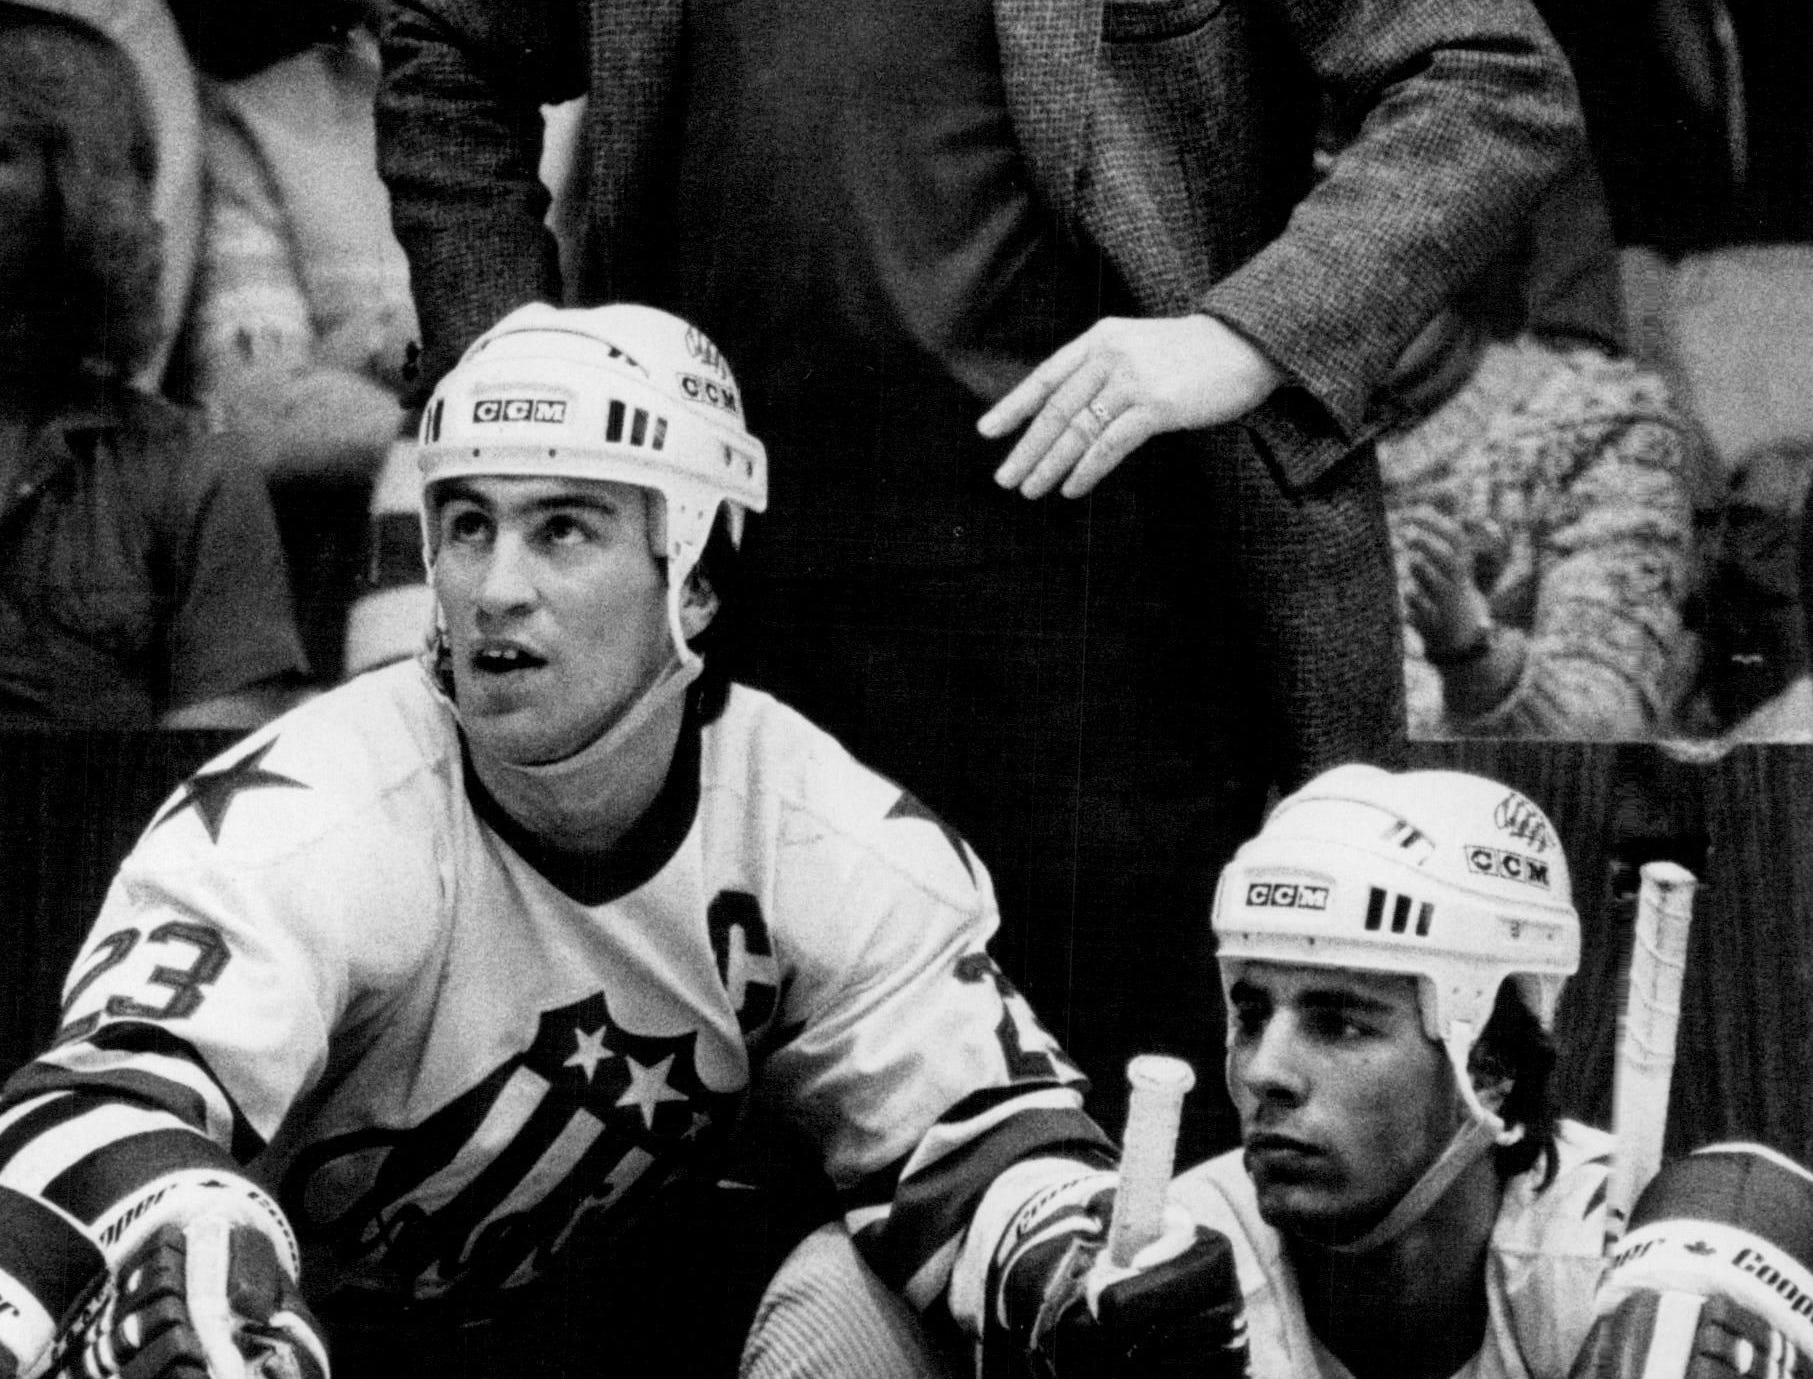 Rochester Americans coach Joe Crozier stands behind the bench during a game in 1984.